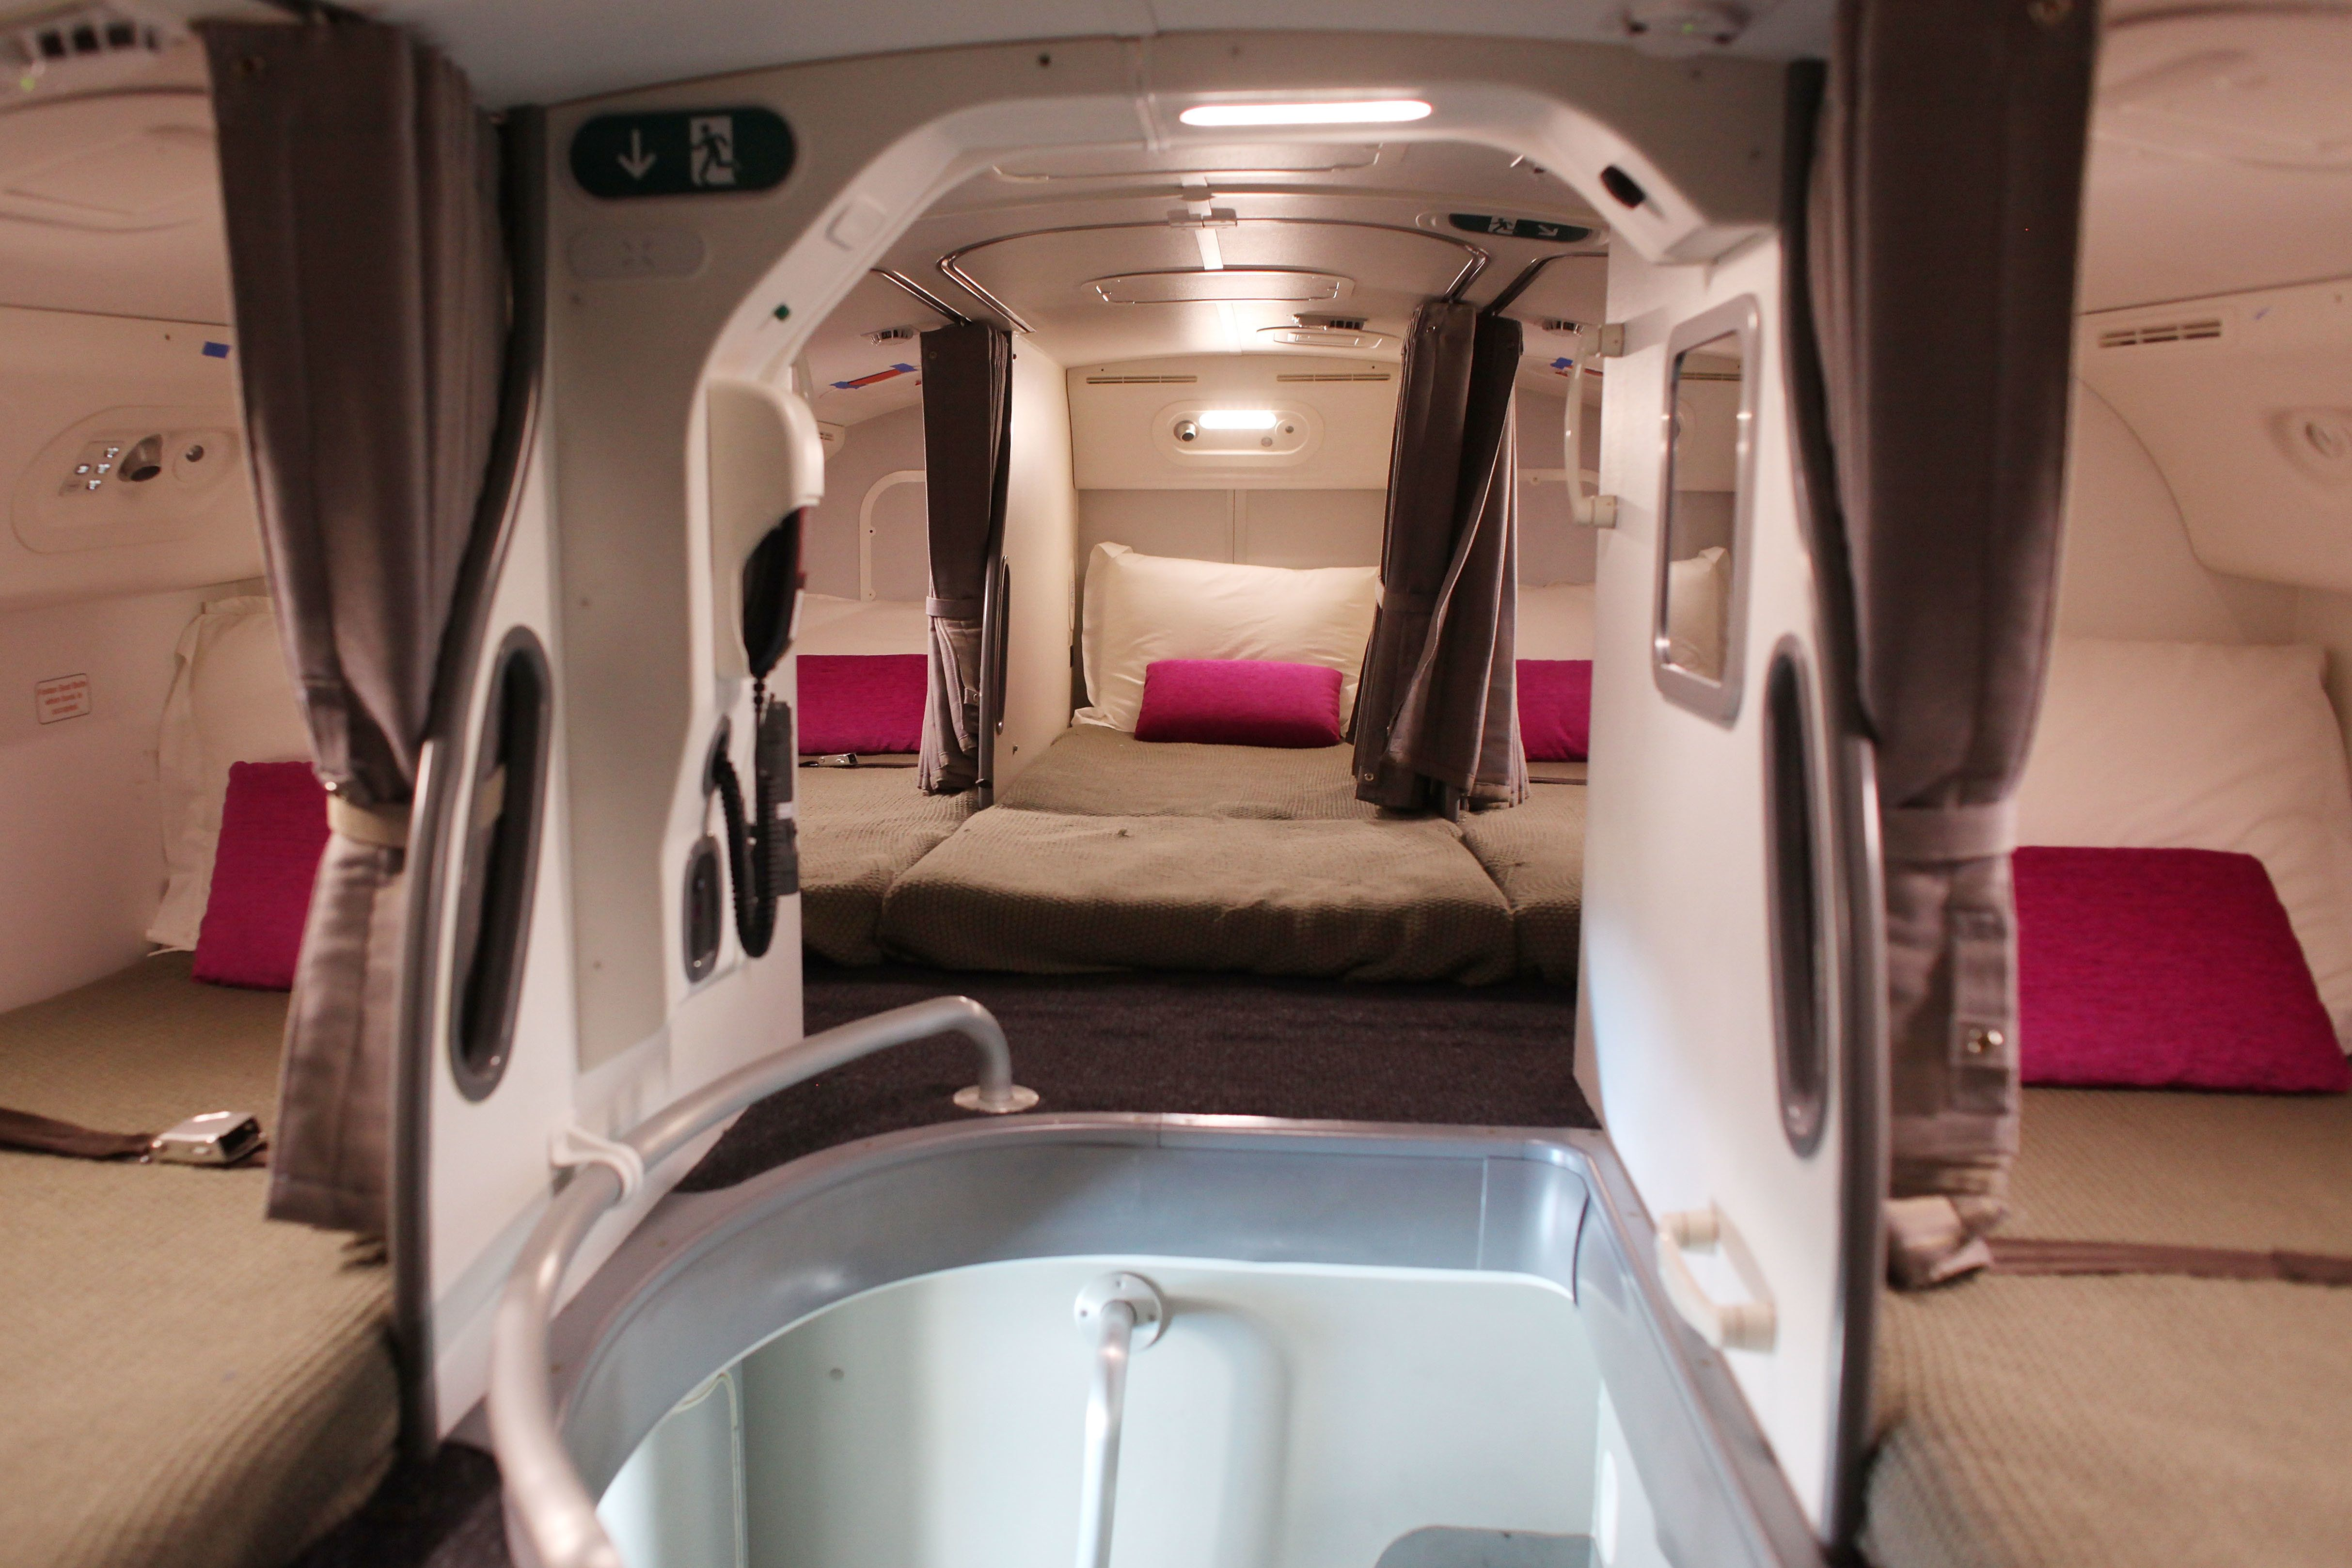 The interior of the crew sleeping quarters on the Boeing 787 Dreamliner is seen during a media tour on February 12, 2012 in Singapore. The 787 Dreamliner will be on show at the Singapore Airshow 2012.  (Photo by Chris McGrath/Getty Images)